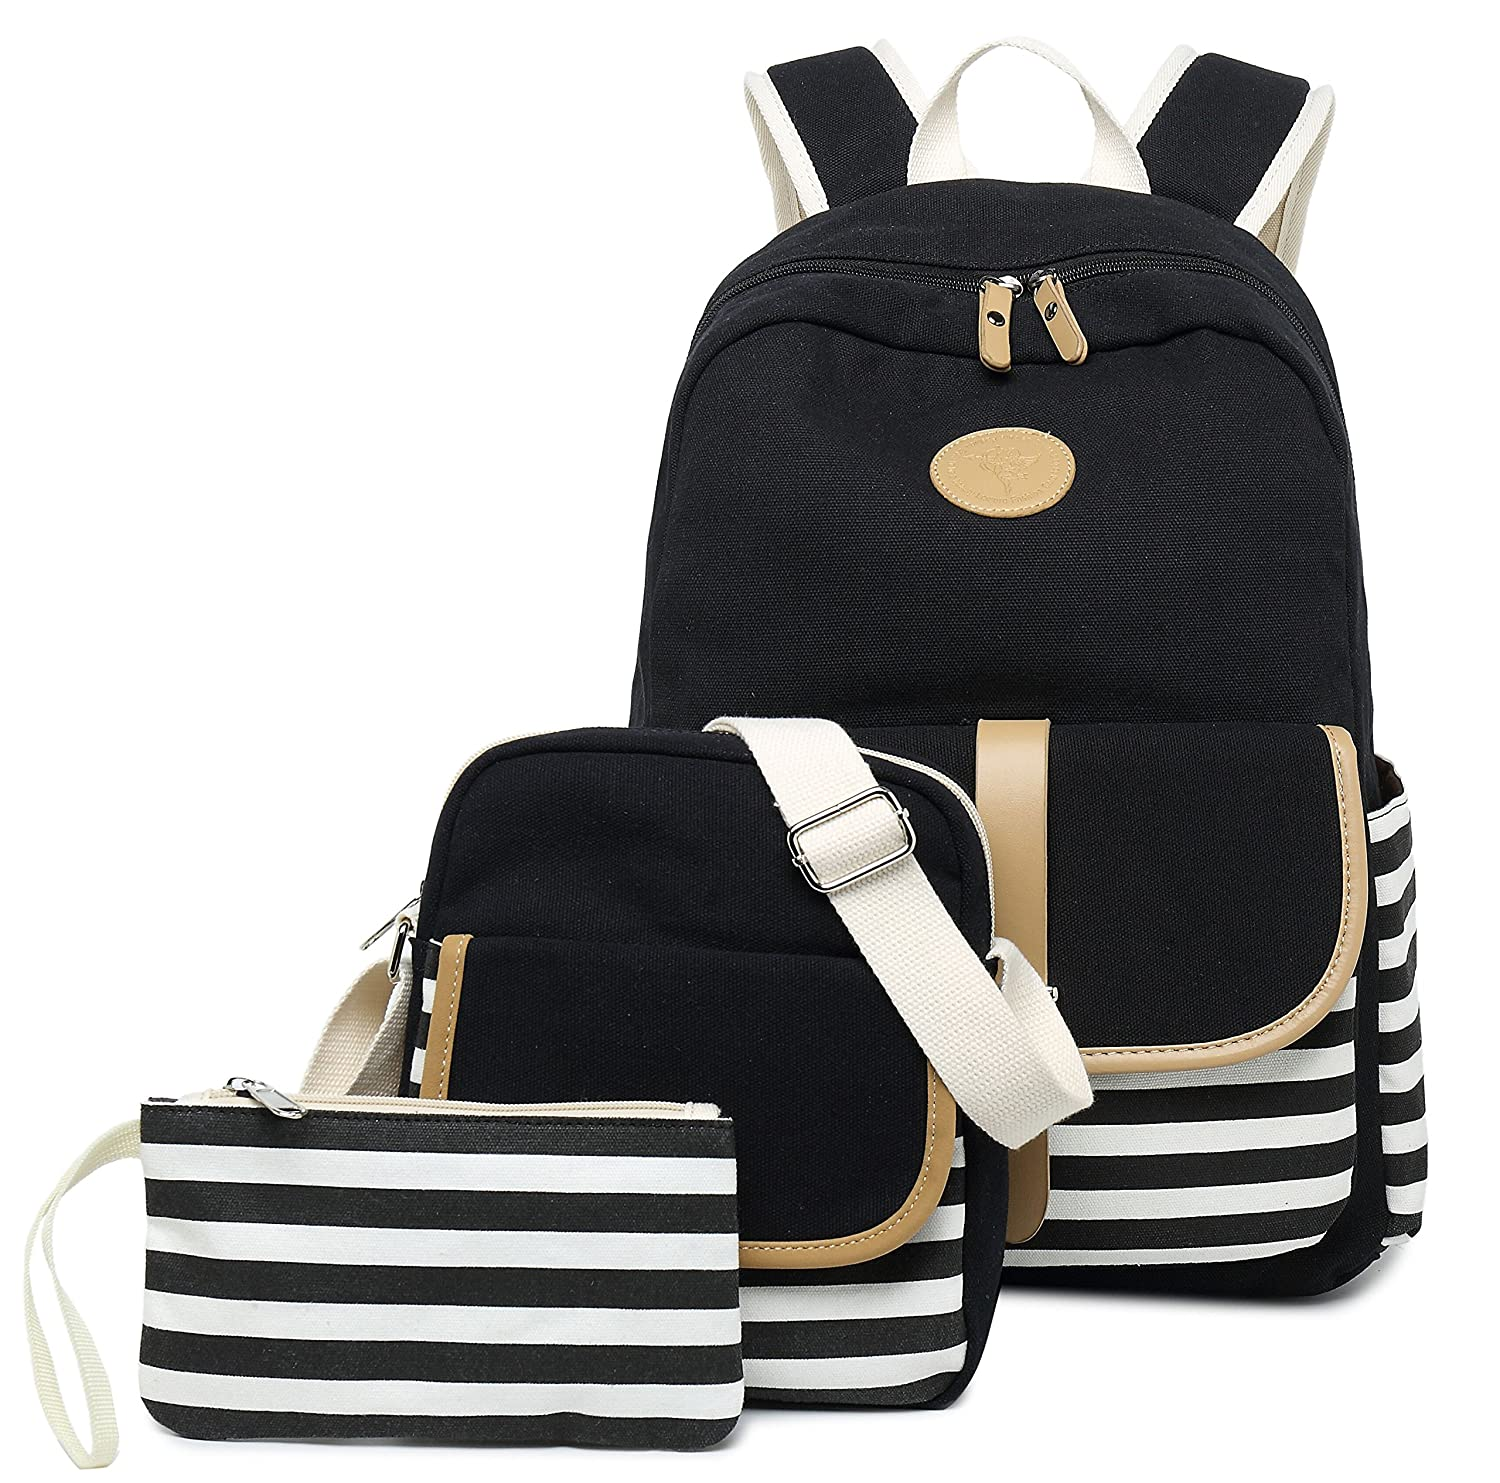 FLYMEI Lightweight Canvas Backpack Black Travel Backpack Boys and Girls School Bag Bookbags Set 3 in 1 Travel Daypack 14Inch Laptop Backpack